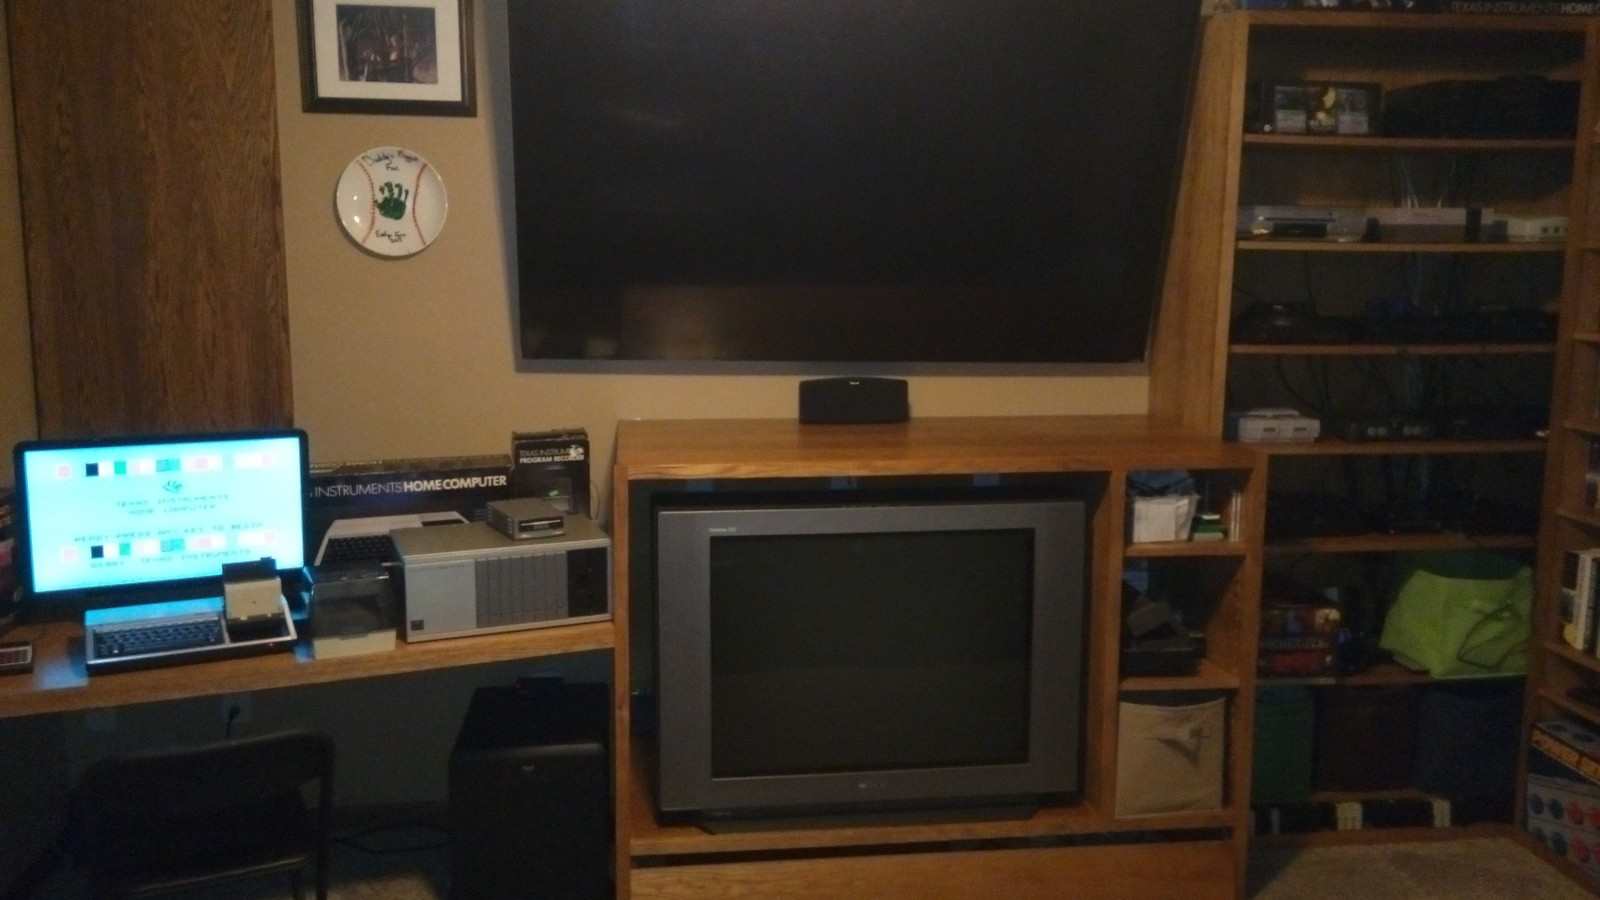 South Wall - Consoles & TVs